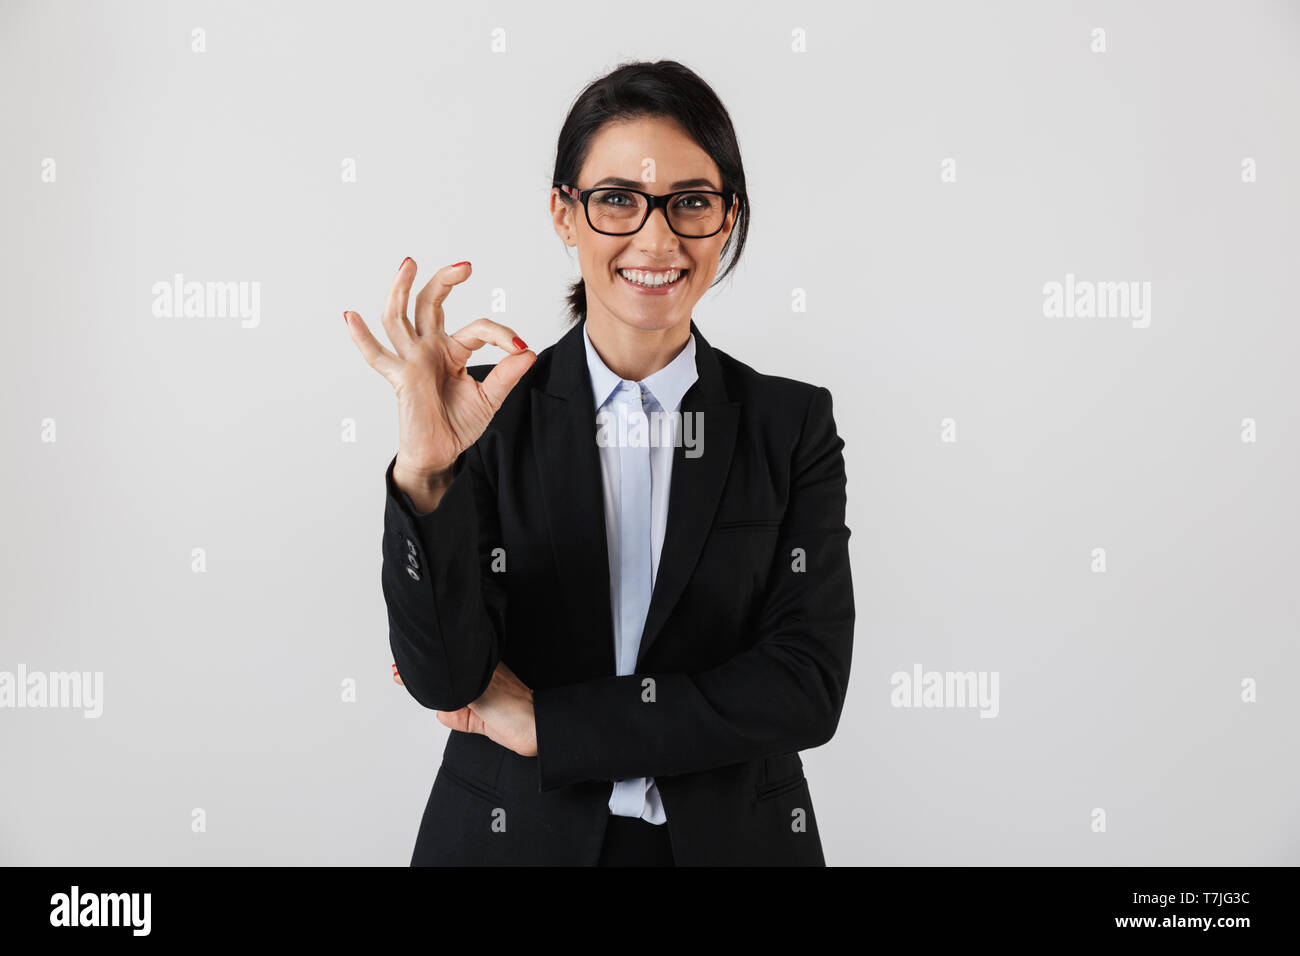 Portrait of attractive businesswoman 30s in formal wear and eyeglasses standing in the office isolated over white background - Stock Image